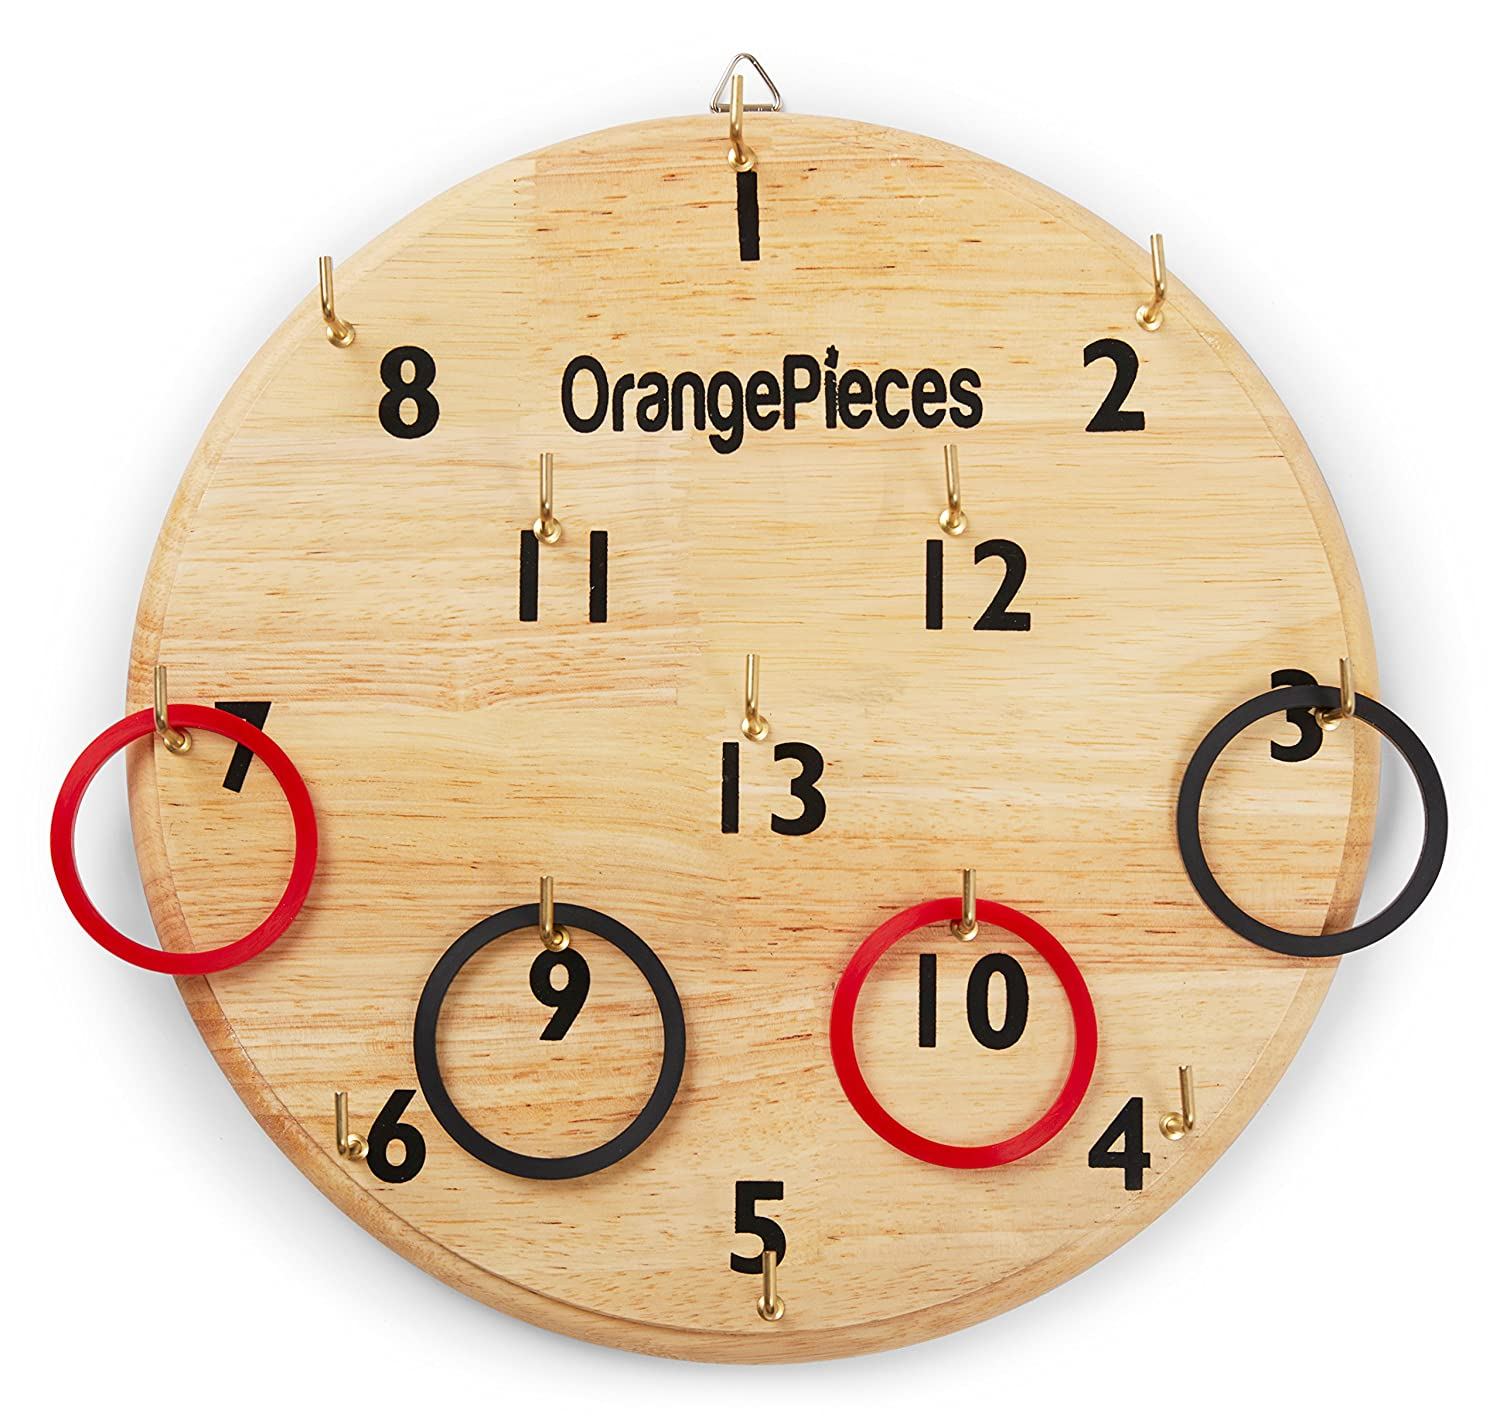 Orange Pieces Hookey Ring Toss Game Play At Home Indoor Outdoor Hookey Board Games For Family